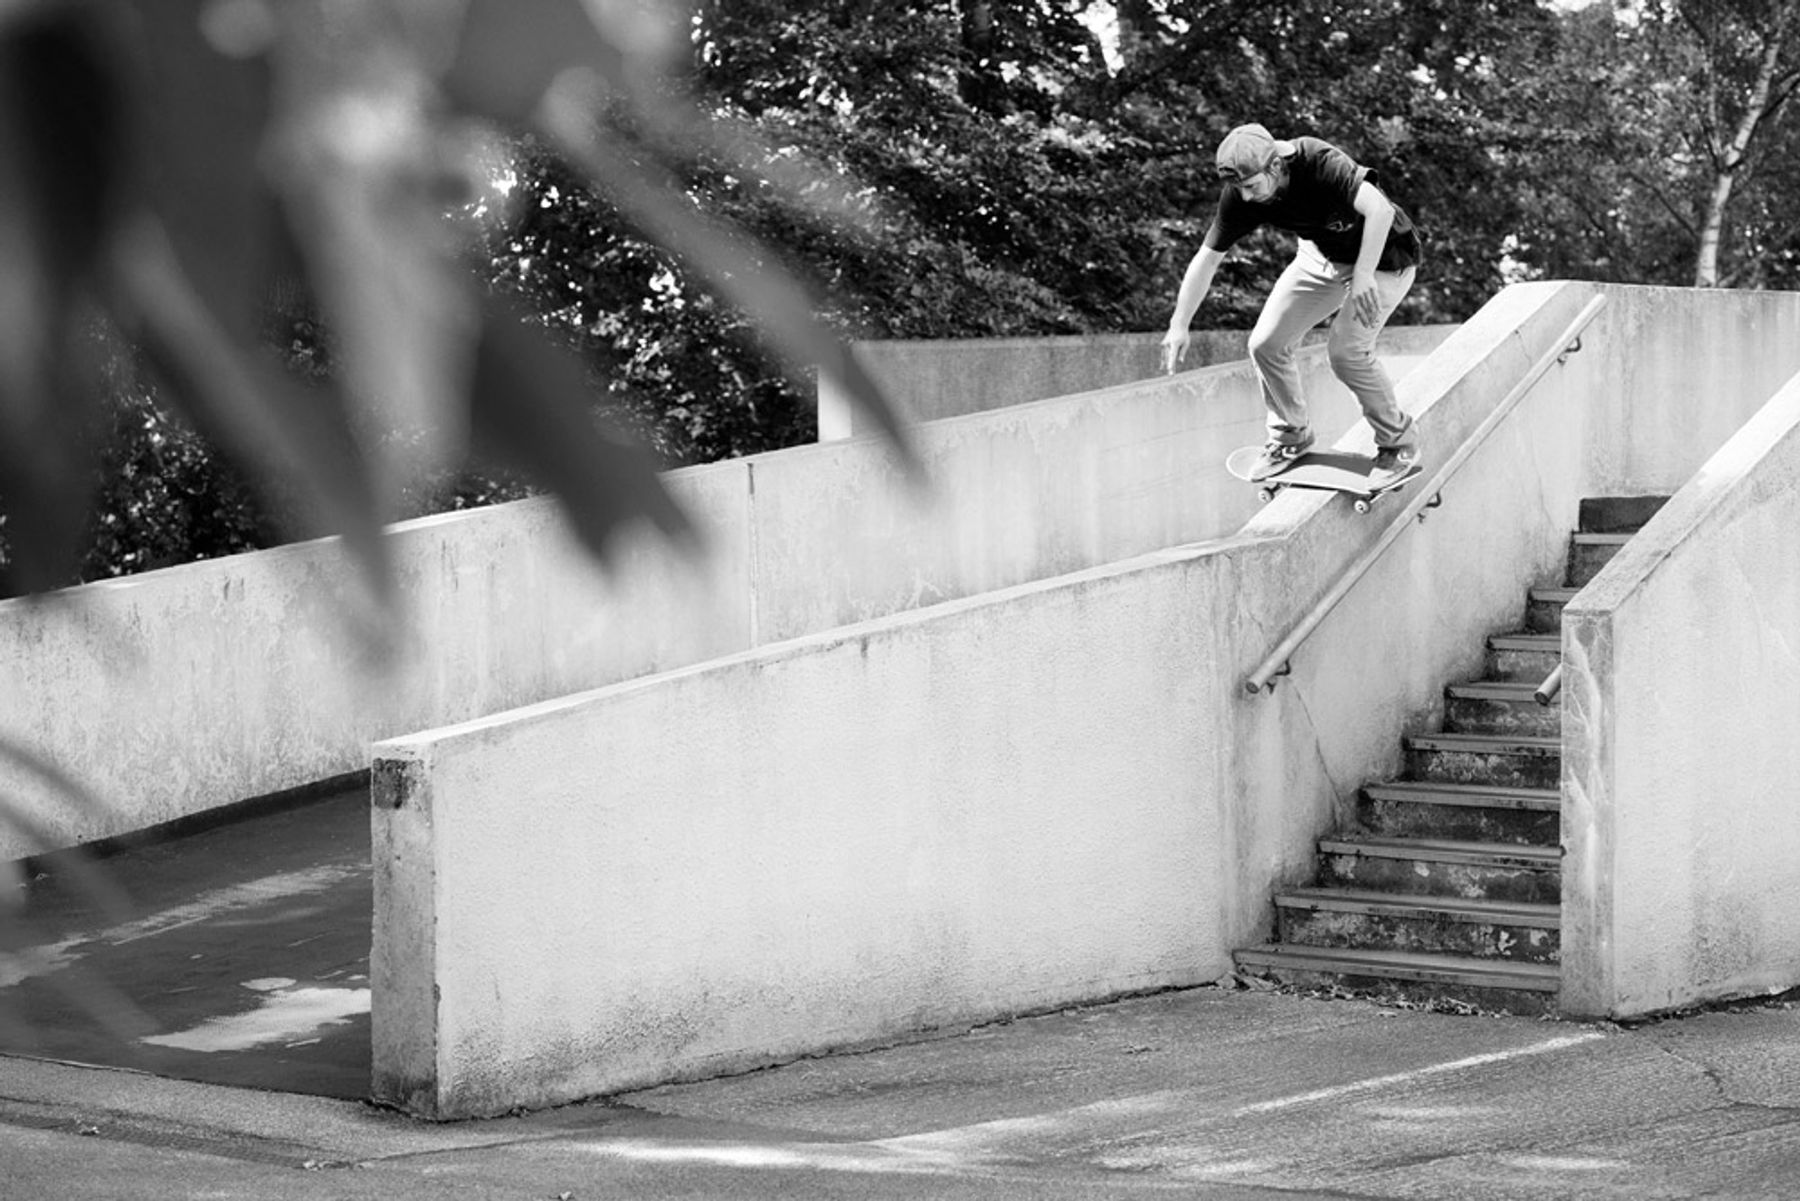 Harry_Lintell_boardslide_Hertford_GREY_copyright_Henry_Kingsford